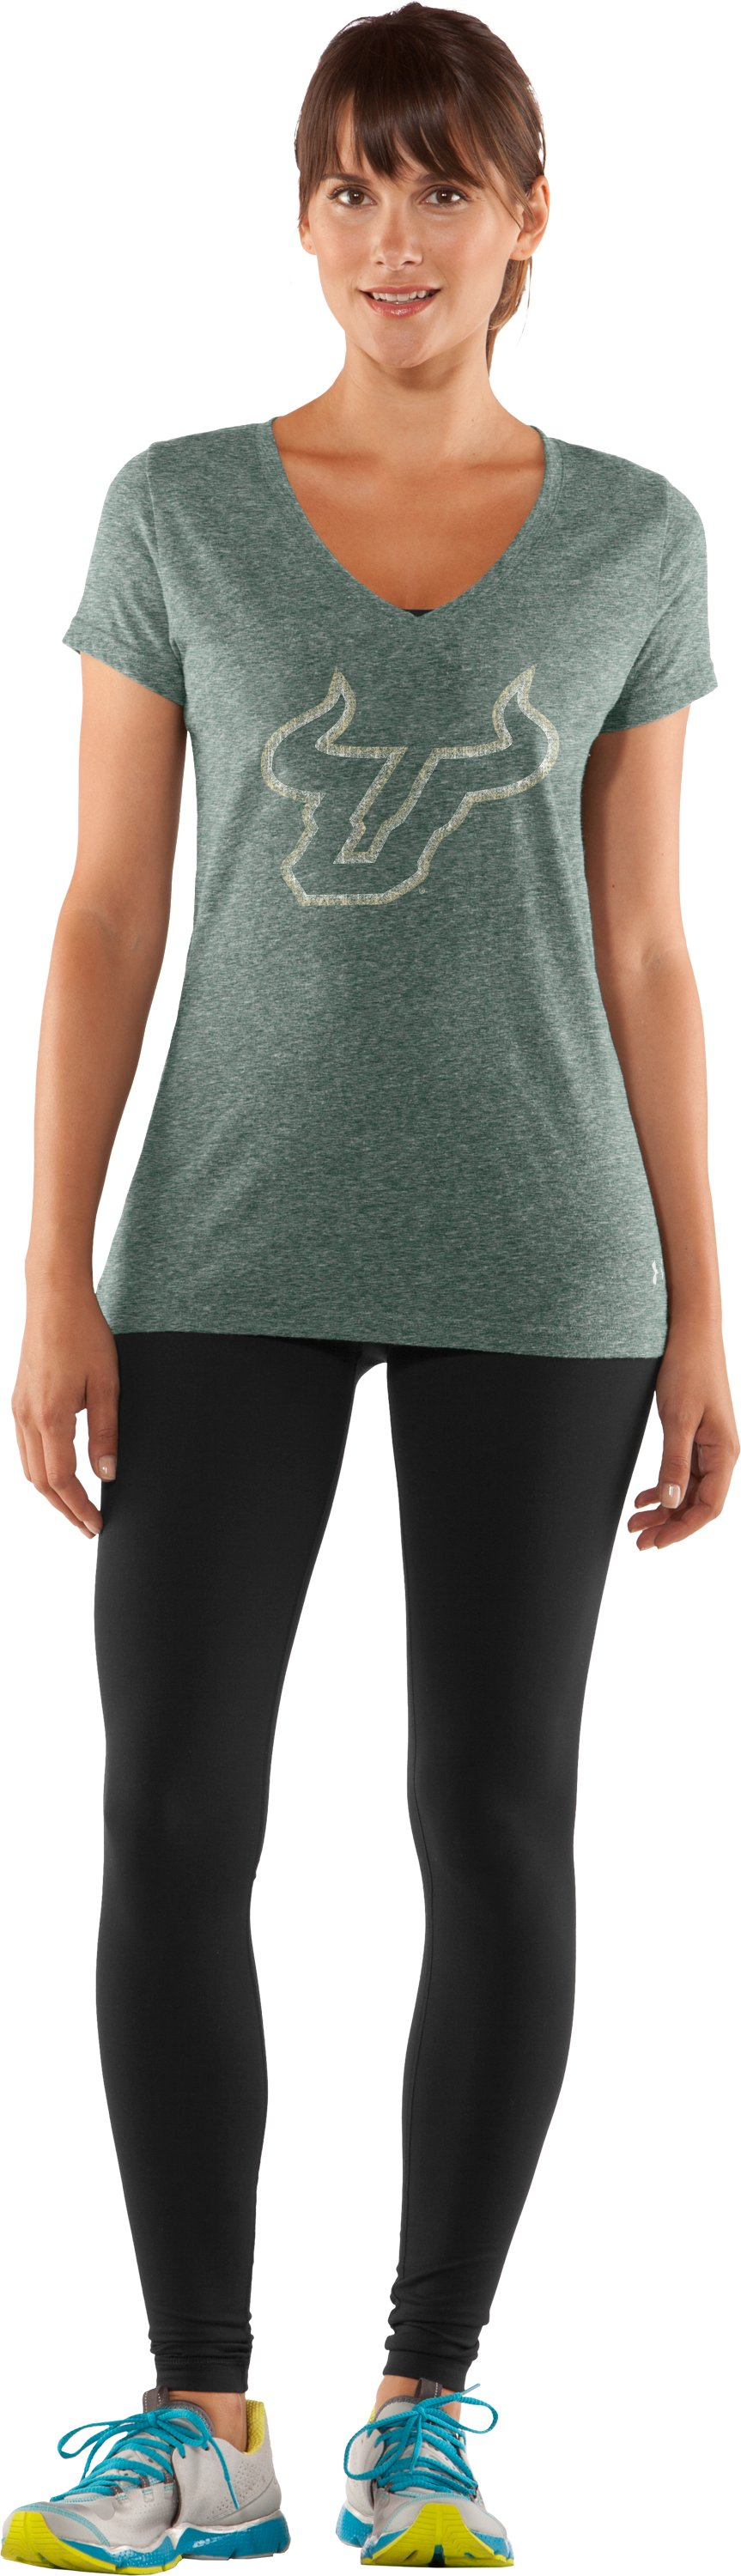 Women's South Florida Under Armour® Legacy T-Shirt, Forest Green, Front